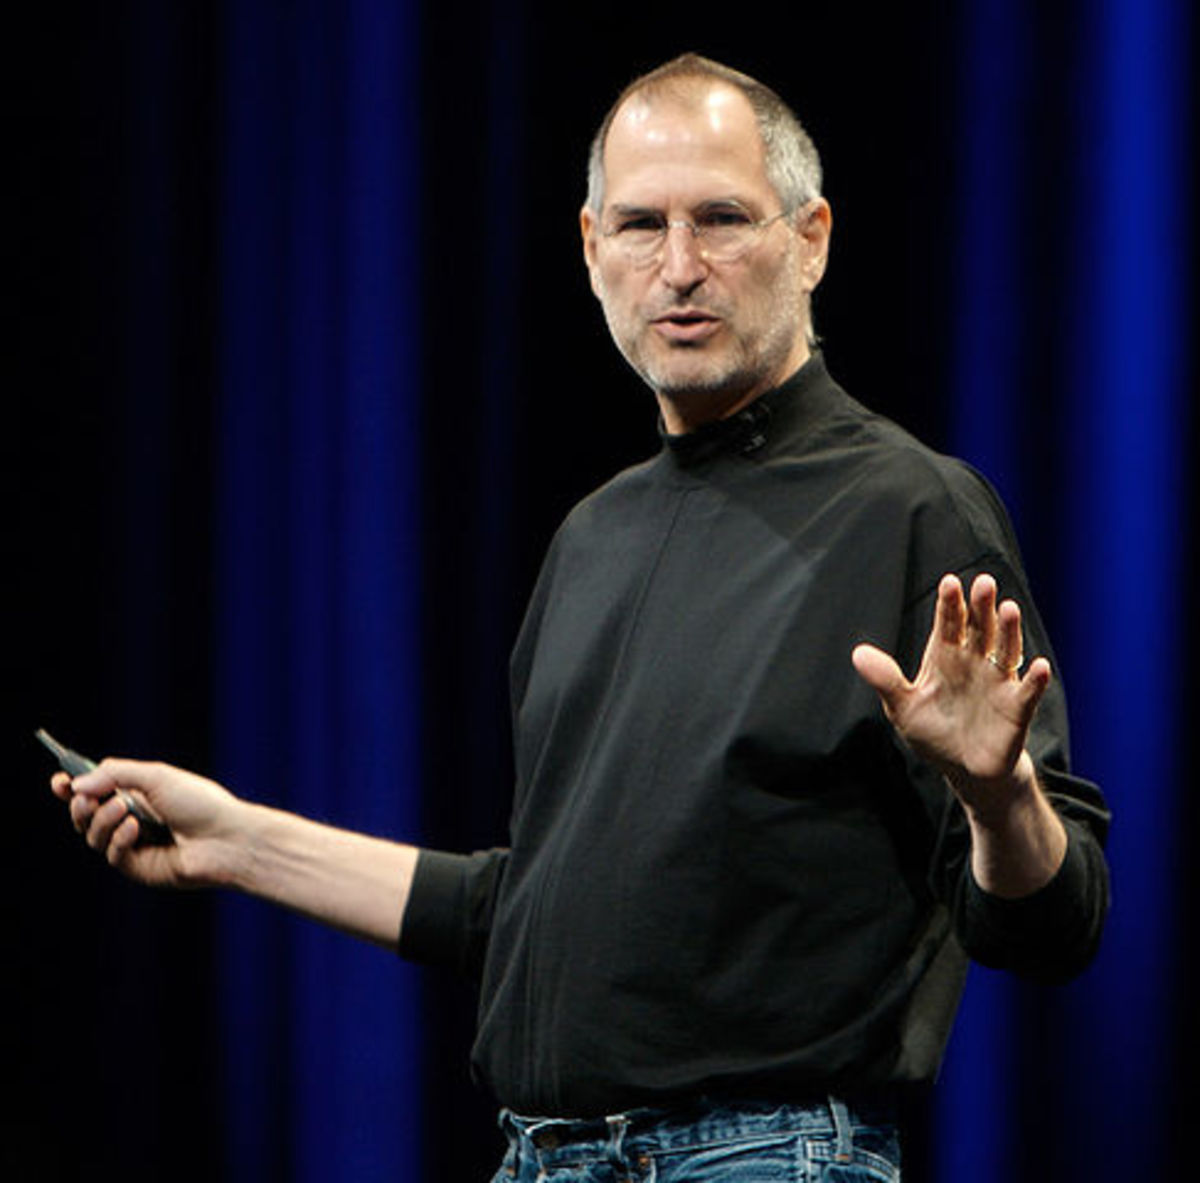 Some Surprising Facts You Don't Know about Steve Jobs: middle name, illegitimate daughter, lost sister, and more